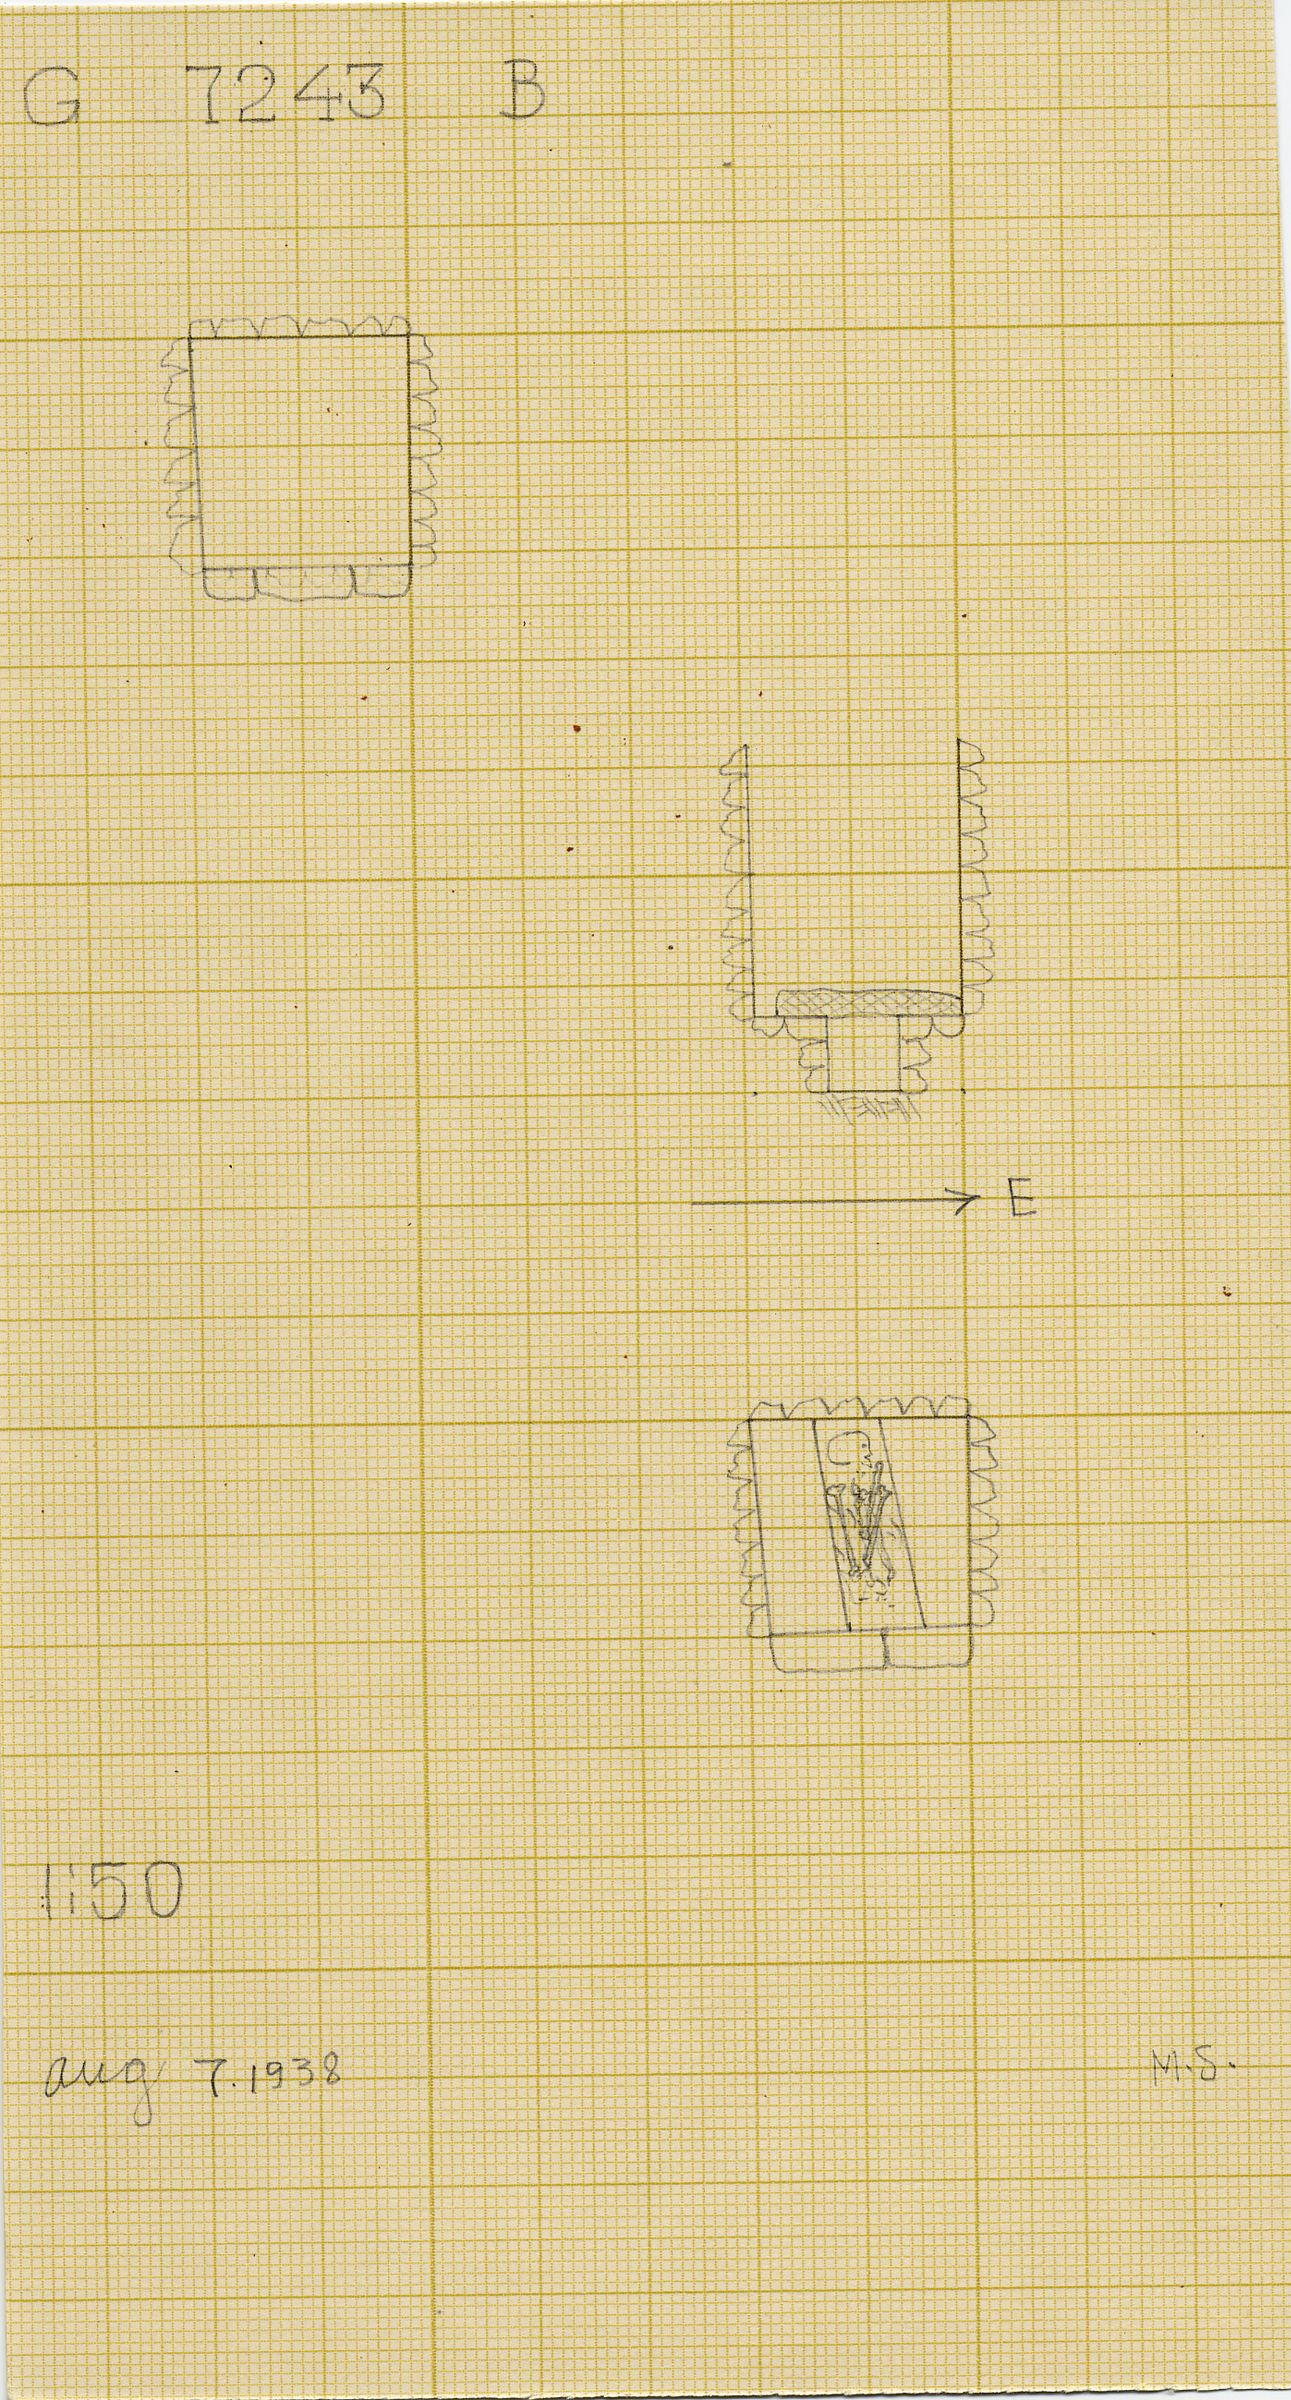 Maps and plans: G 7243, Shaft B